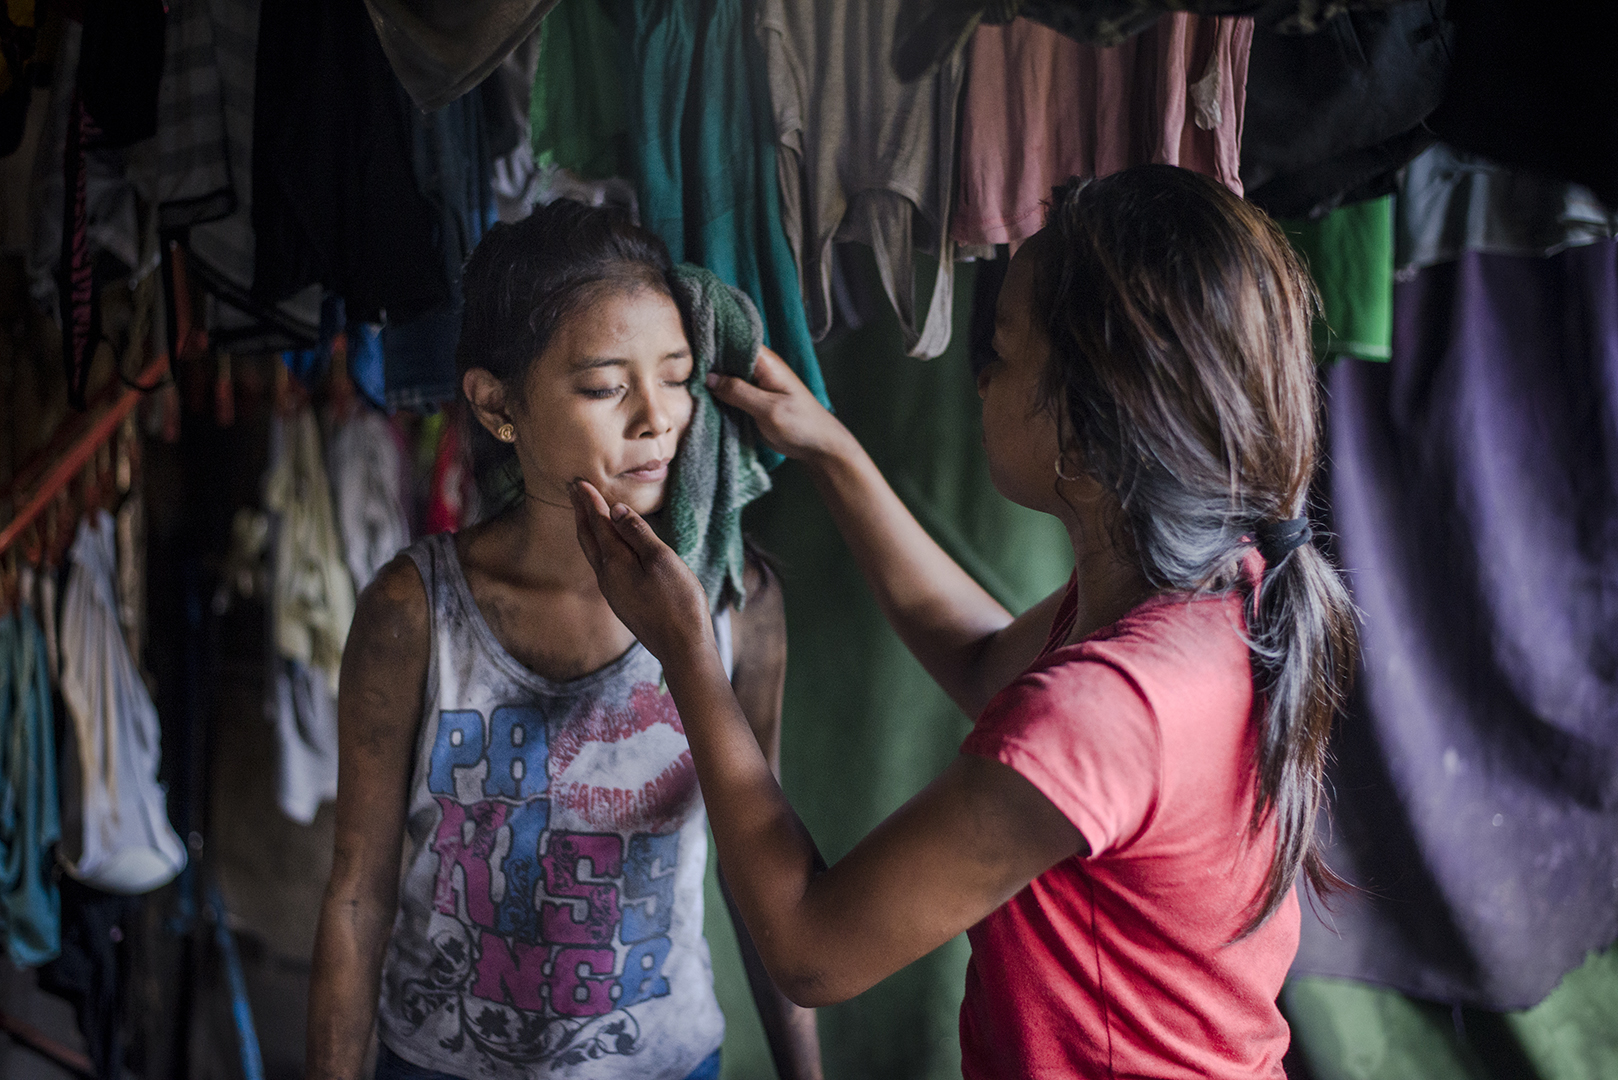 Jane-Rosa (16) and Shira (13) help each other wash up after a day of work in the local charcoal production. Girls know each other since a long-time, they live nearby, work and play together. Malabon, Philippines, 2017